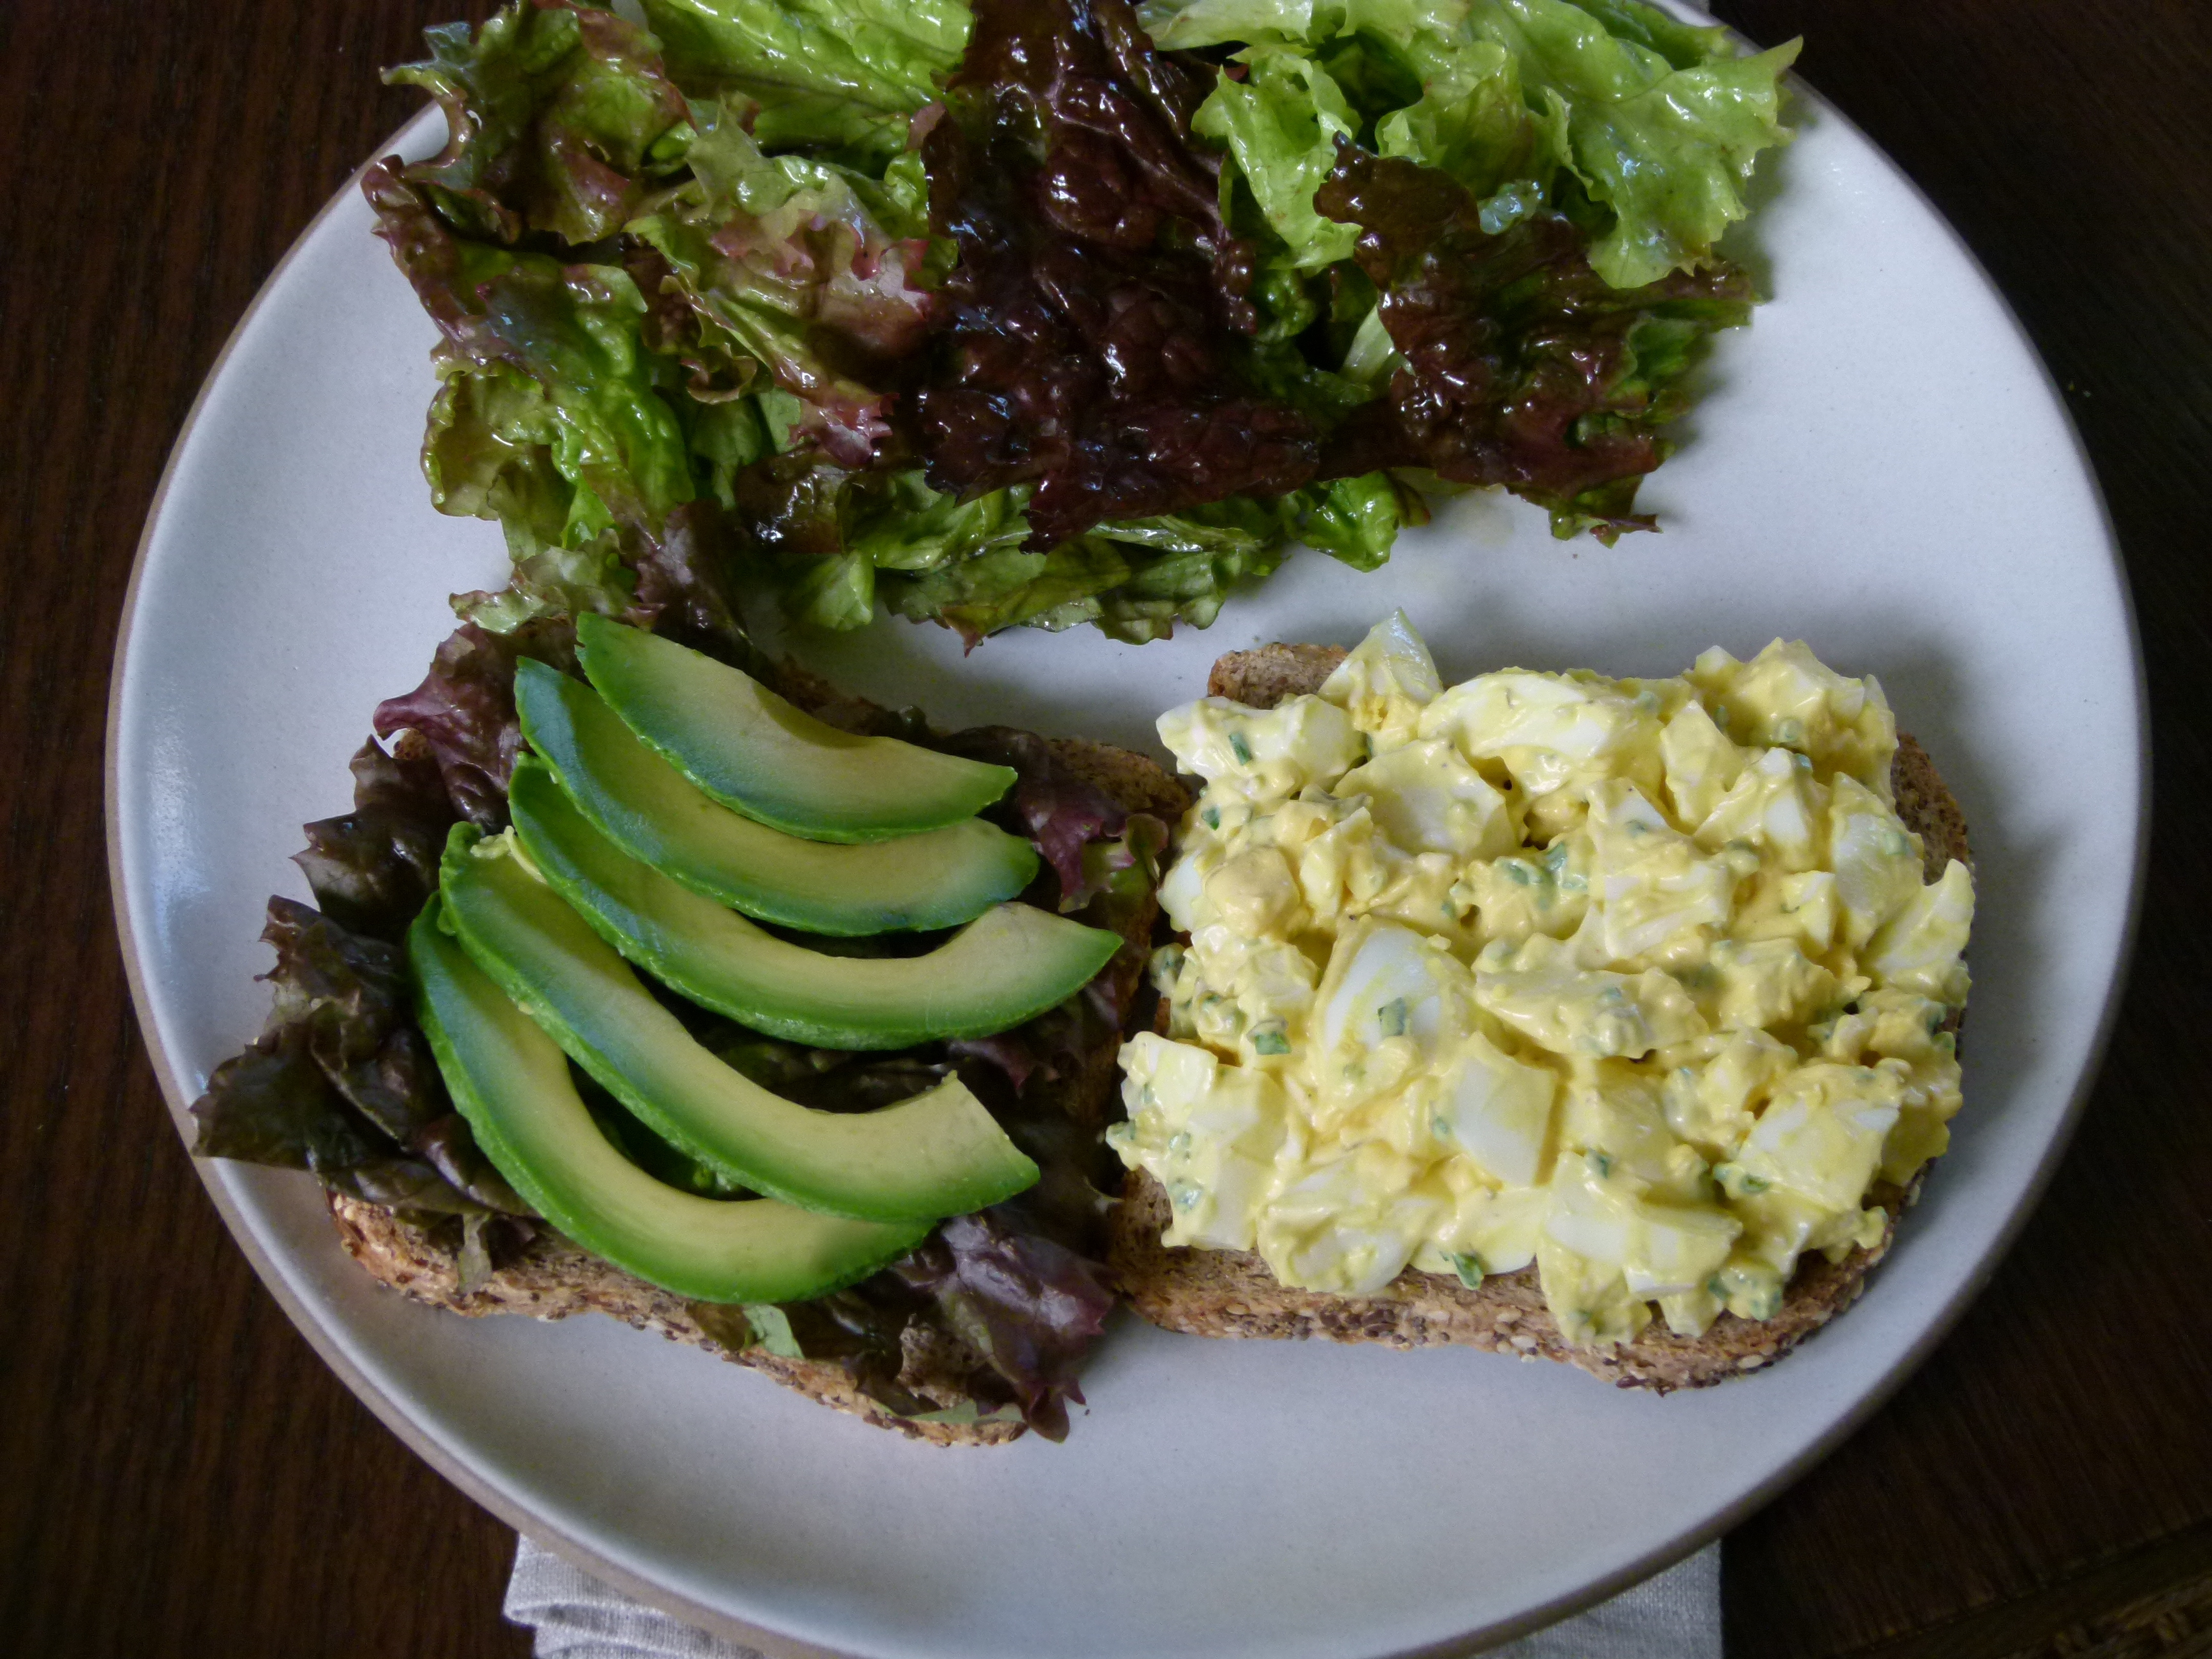 egg salad recipe and other things you can do with hard boiled eggs